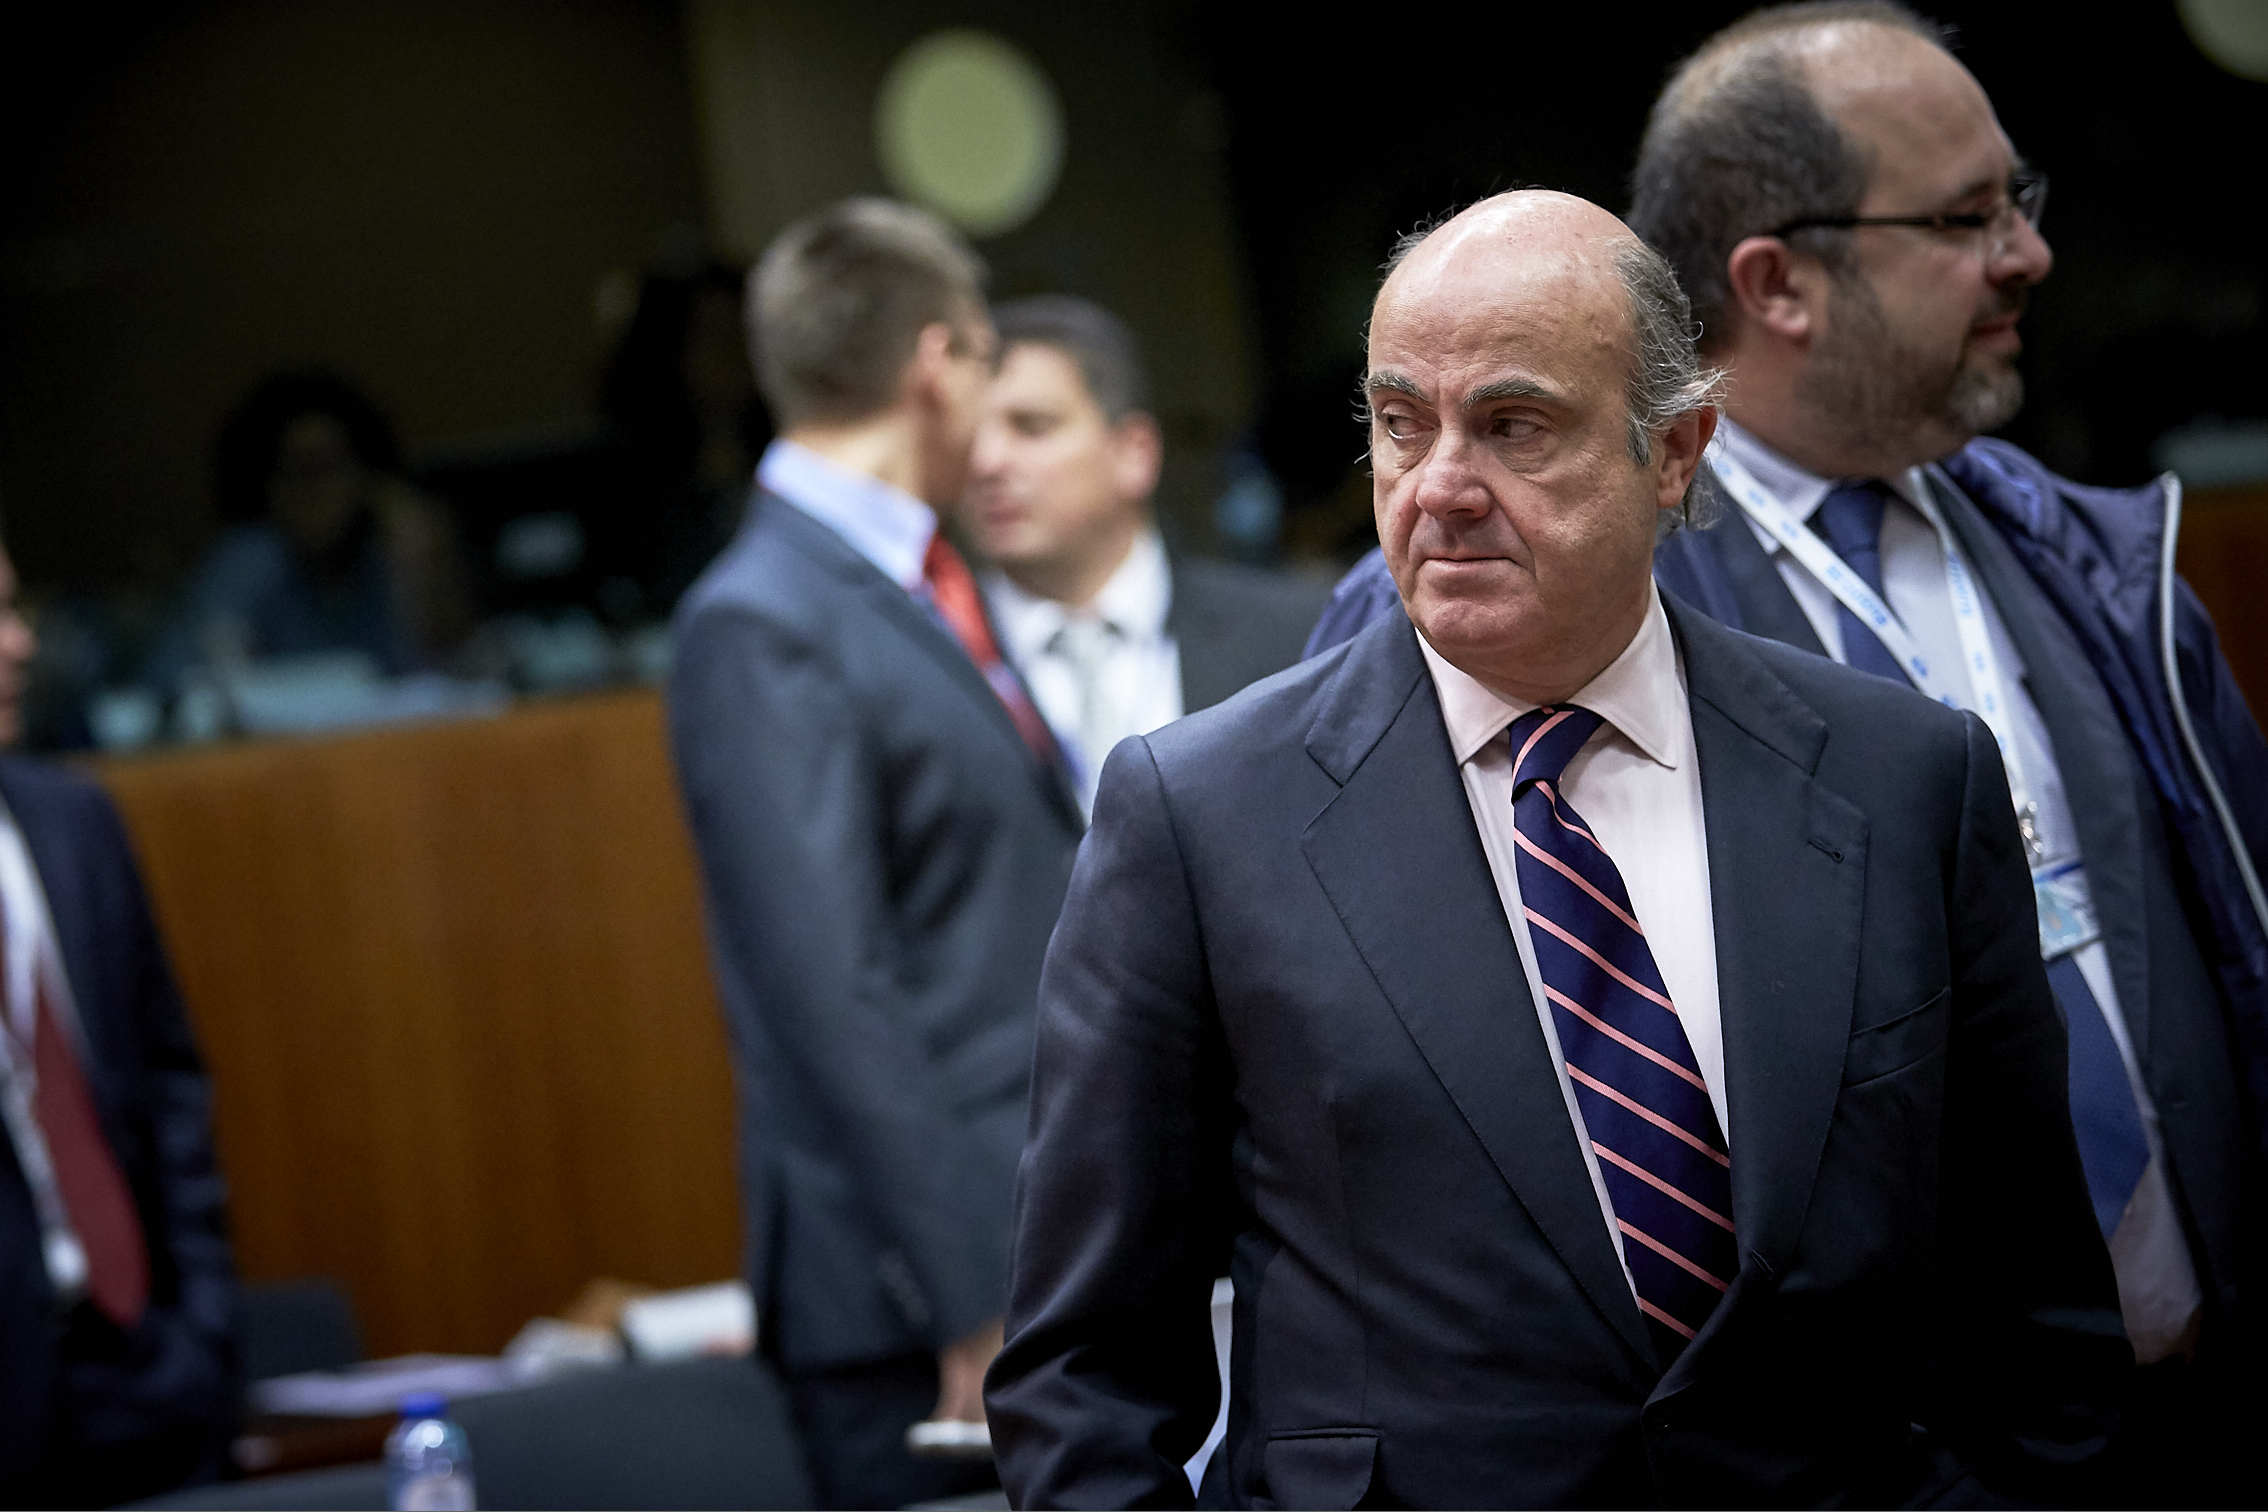 Eurozone backs Spain's De Guindos for European Central Bank  top job